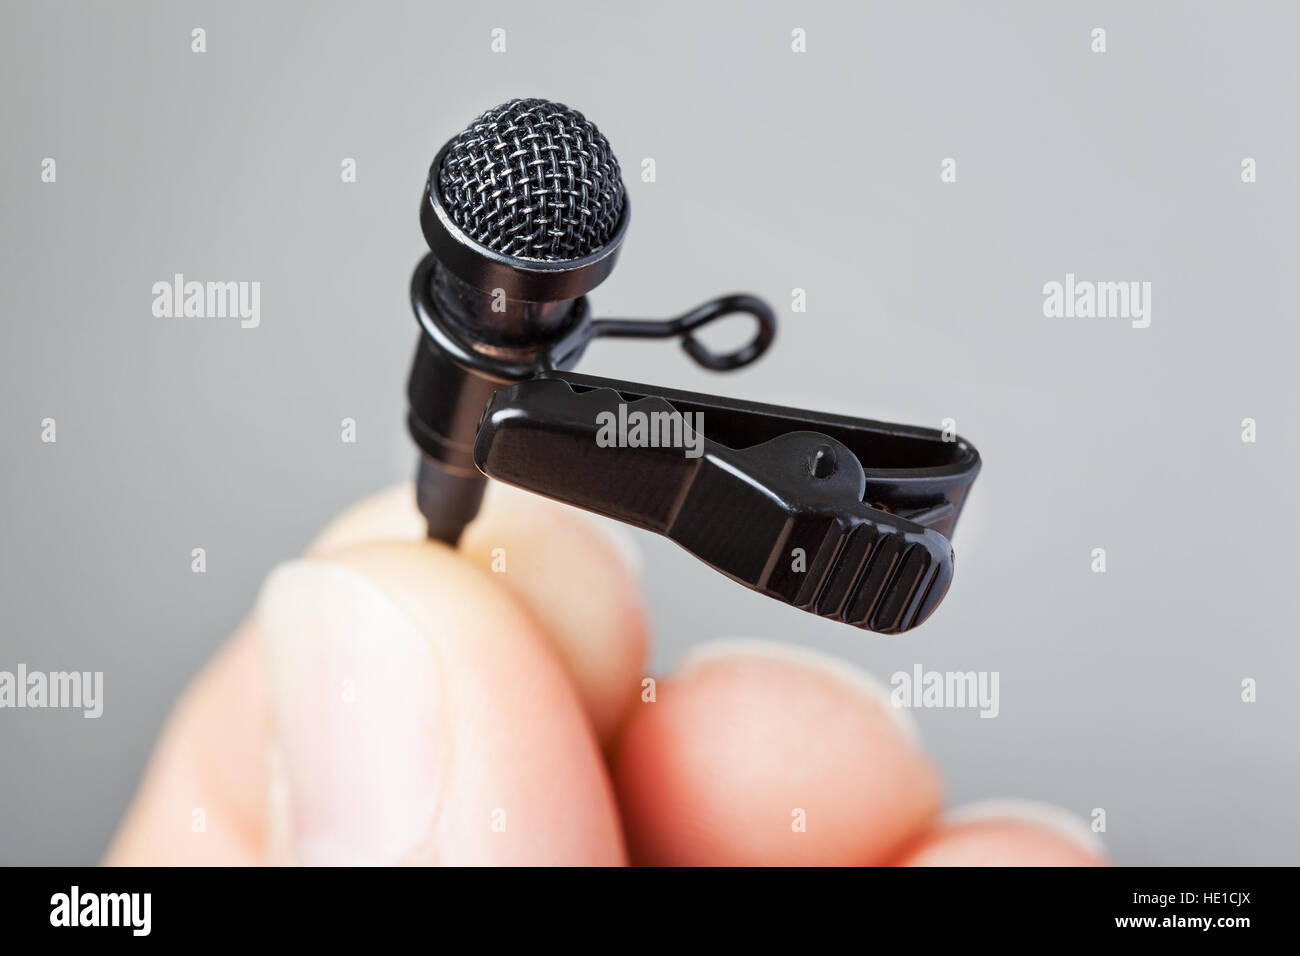 Close-up of a hand holding a tie-clip microphone with a plain background - Stock Image